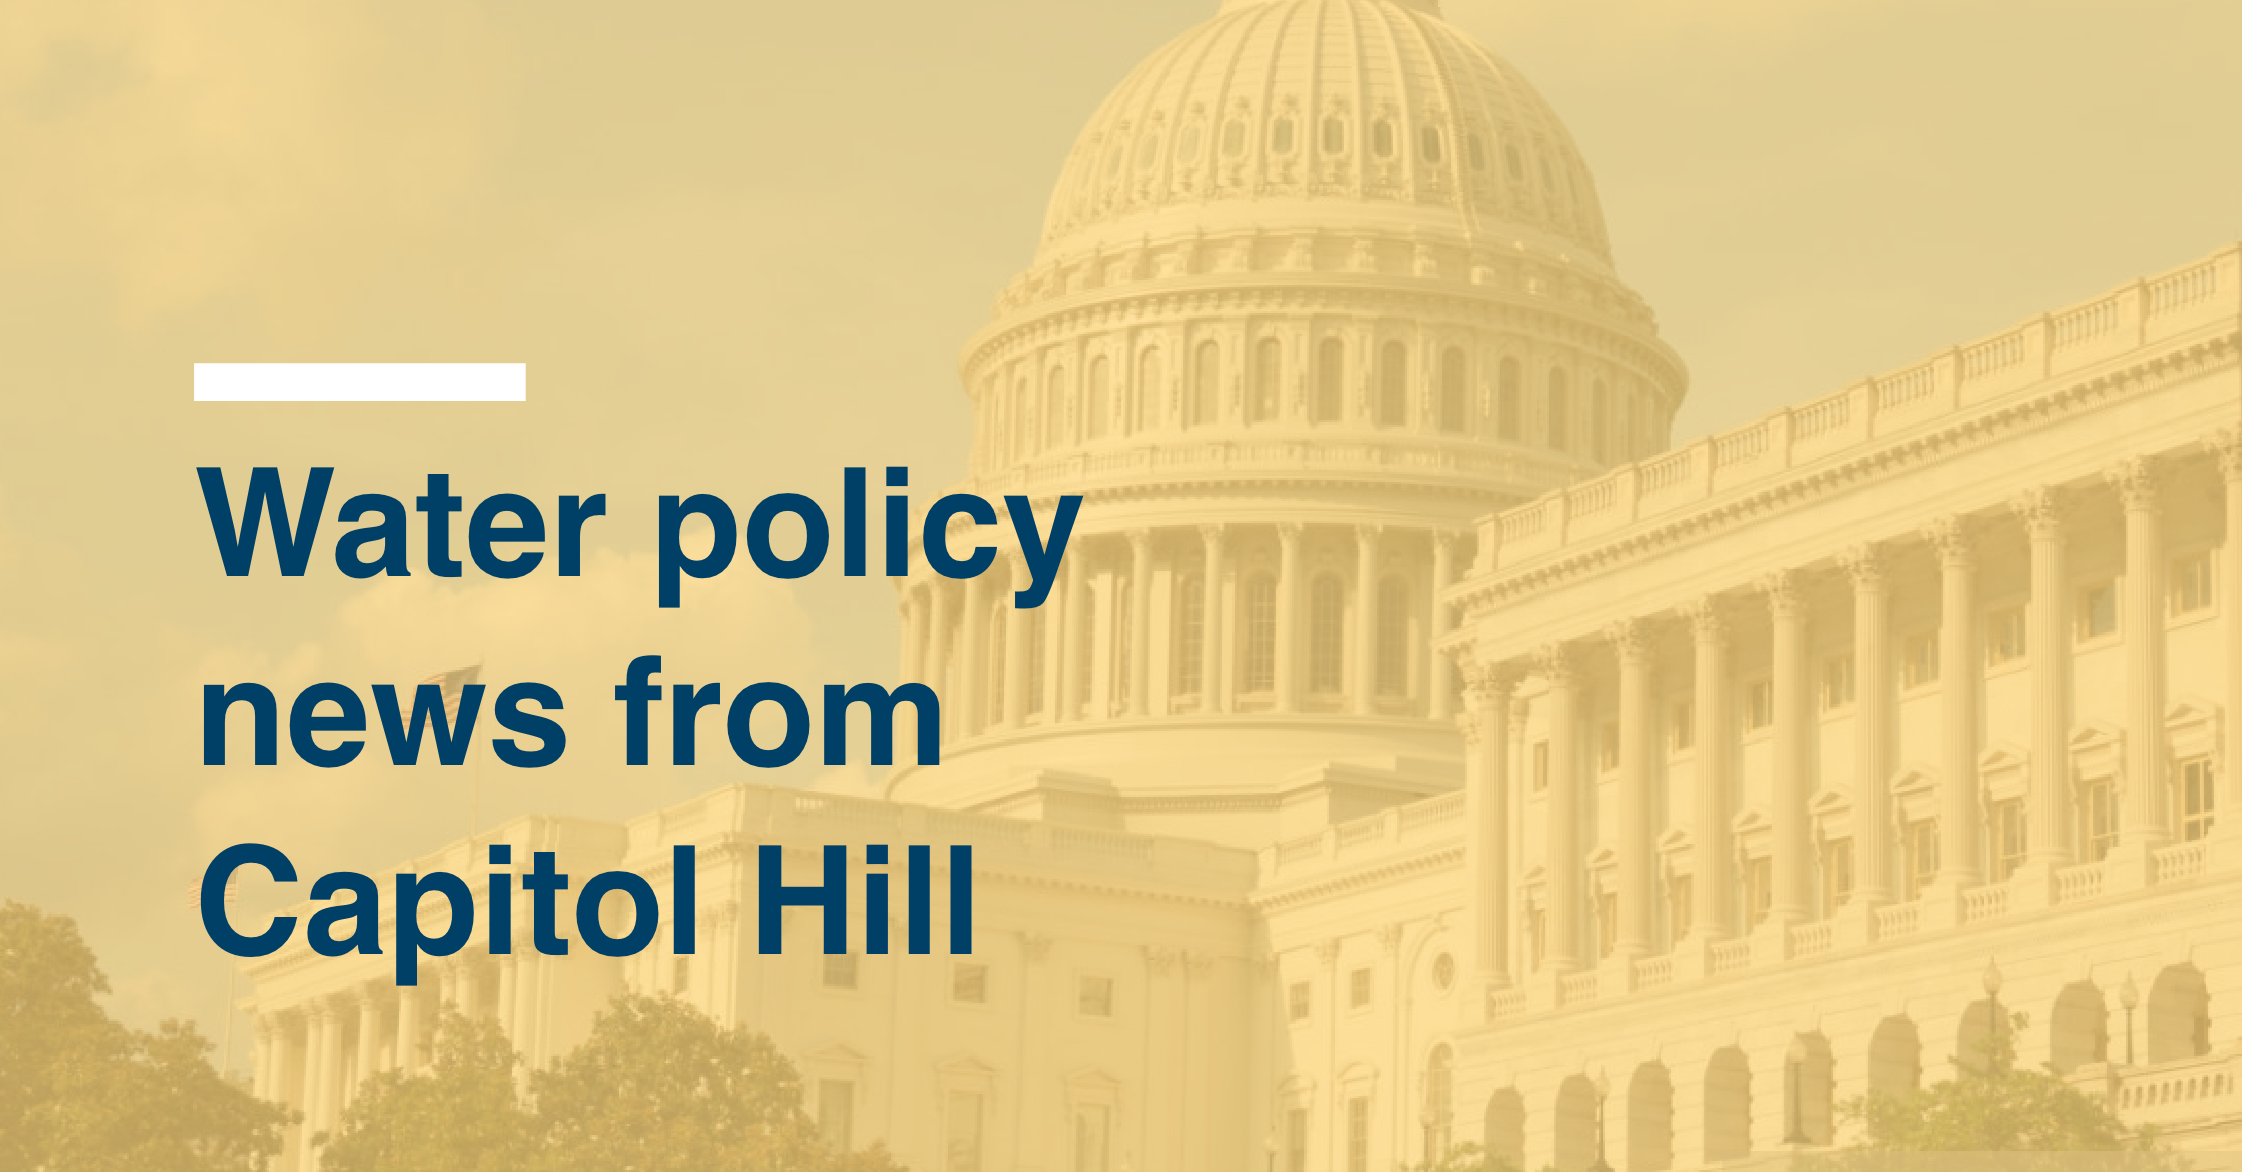 Water policy news from Capitol Hill